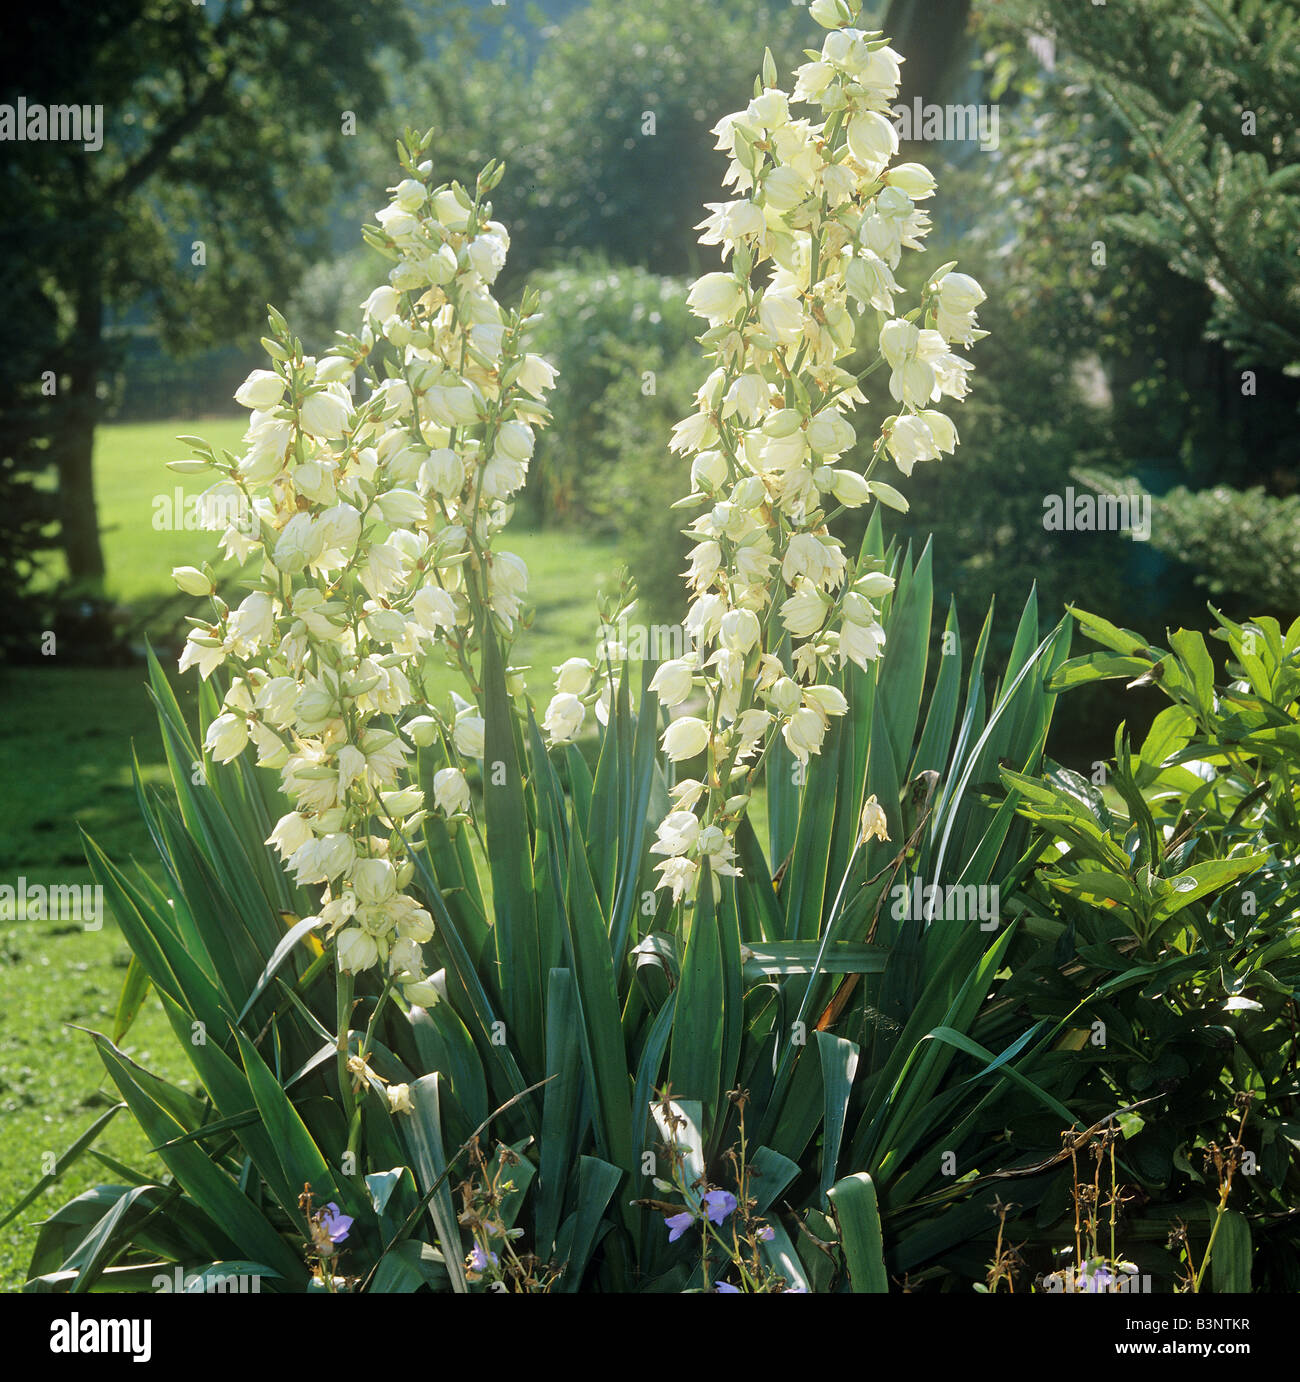 Needle Flower High Resolution Stock Photography And Images Alamy